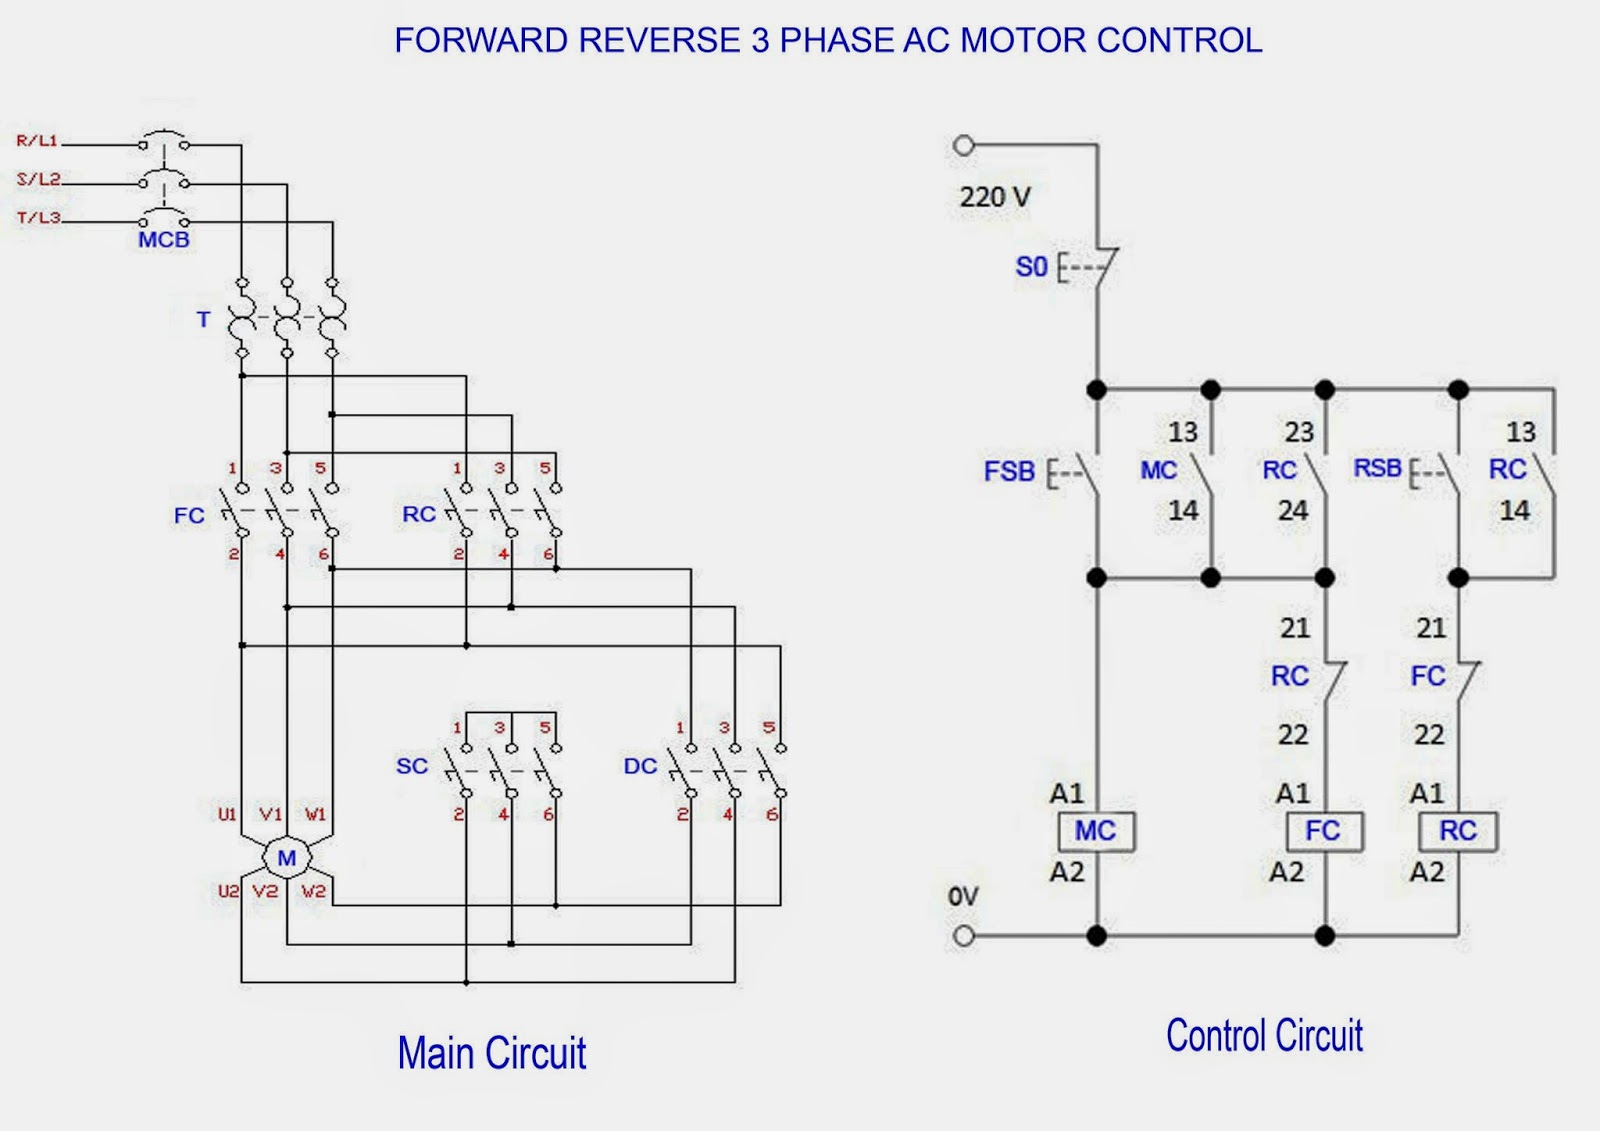 forward reverse  phase ac motor control wiring diagram, wiring diagram